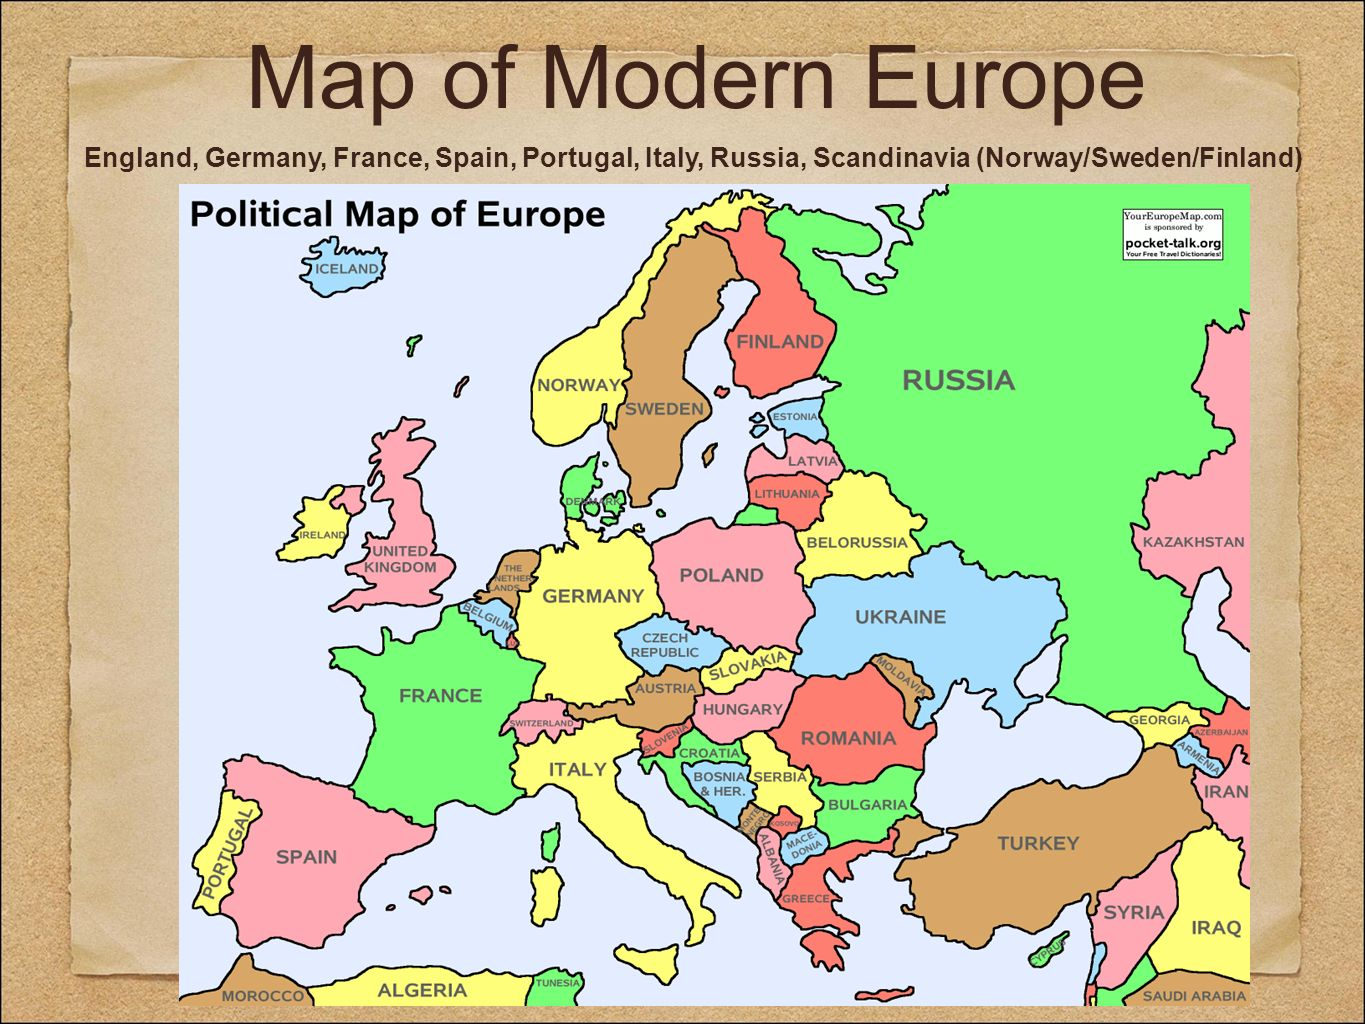 The Middle Ages Chapter Teacher Notes Ppt Video Online Download - Portugal vegetation map